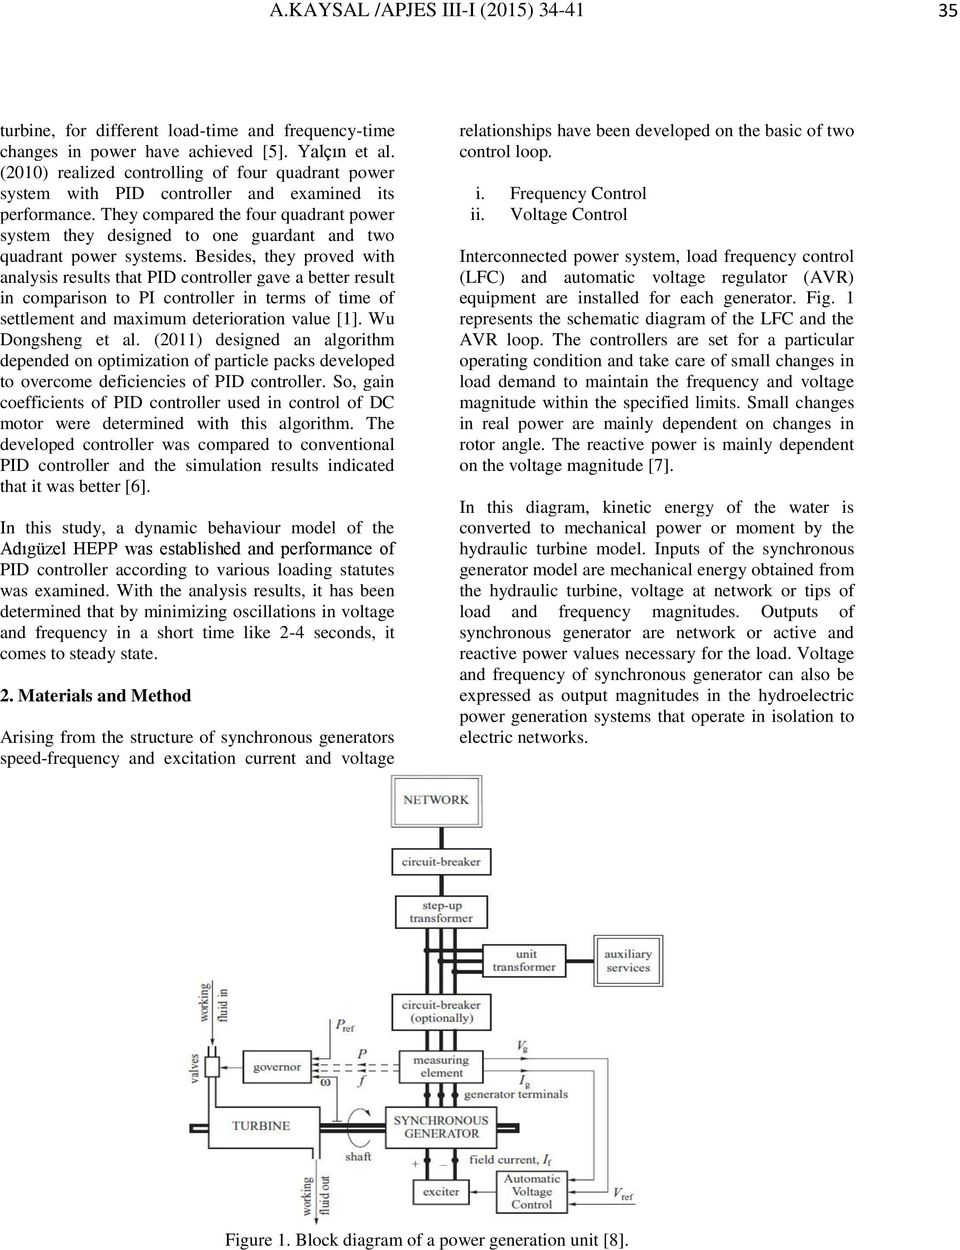 Adgzel Hydroelectric Power Plant Modeling And Load Frequency Circuit Breaker Logic In They Compared The Four Quadrant System Designed To One Guardant Two